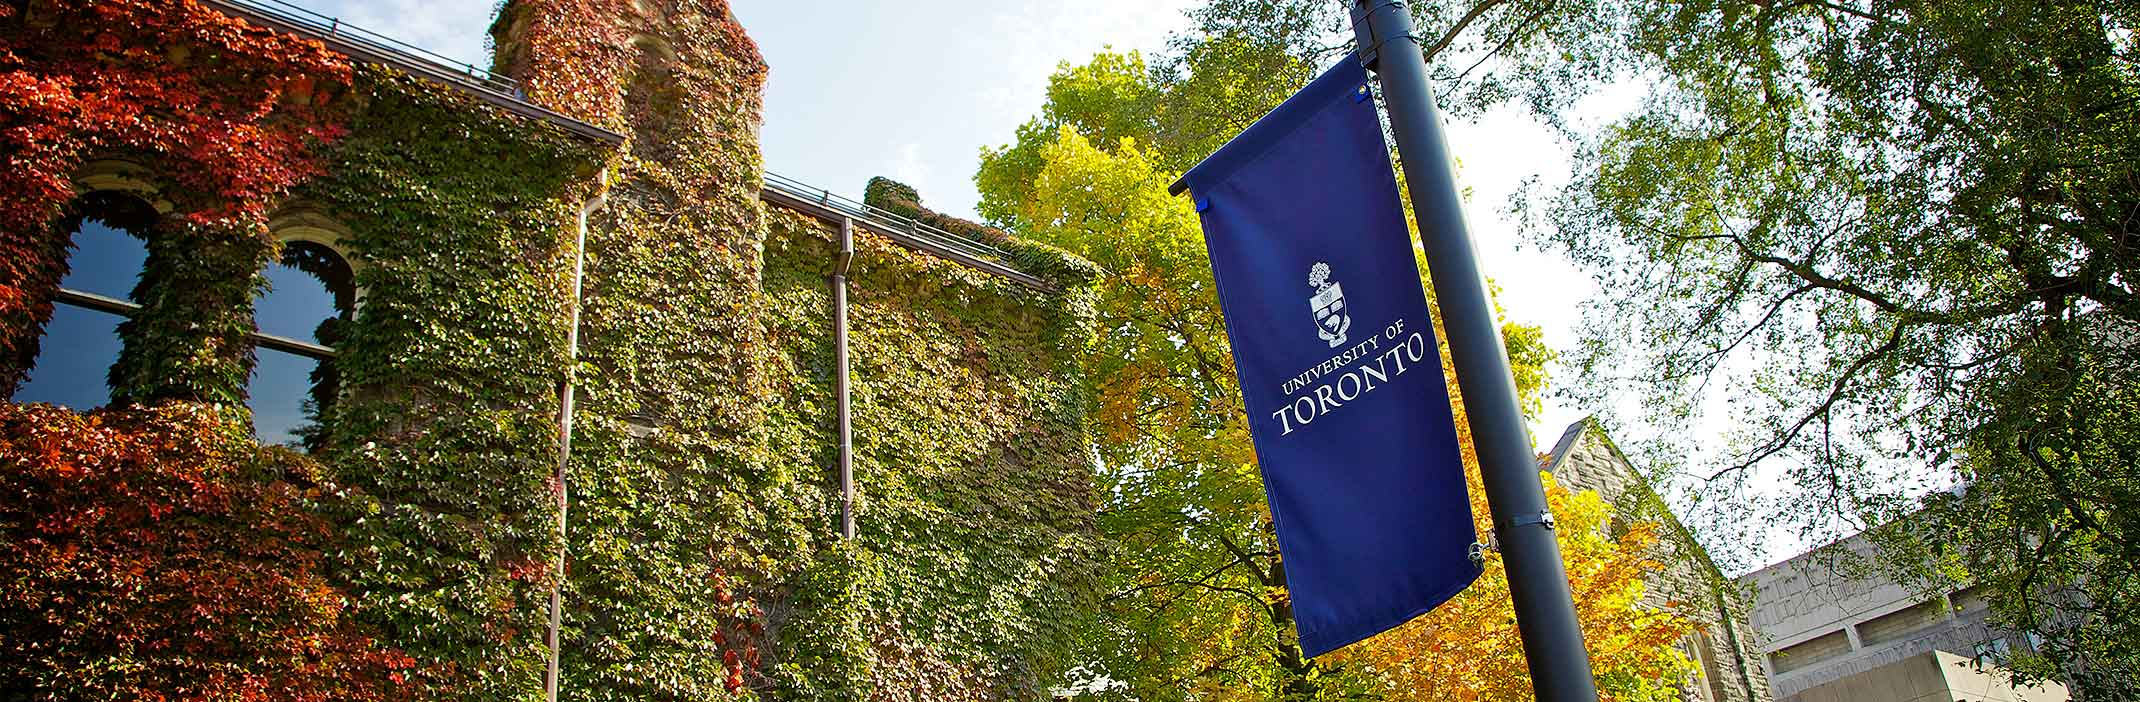 An blue U of T banner outside with trees in the background.